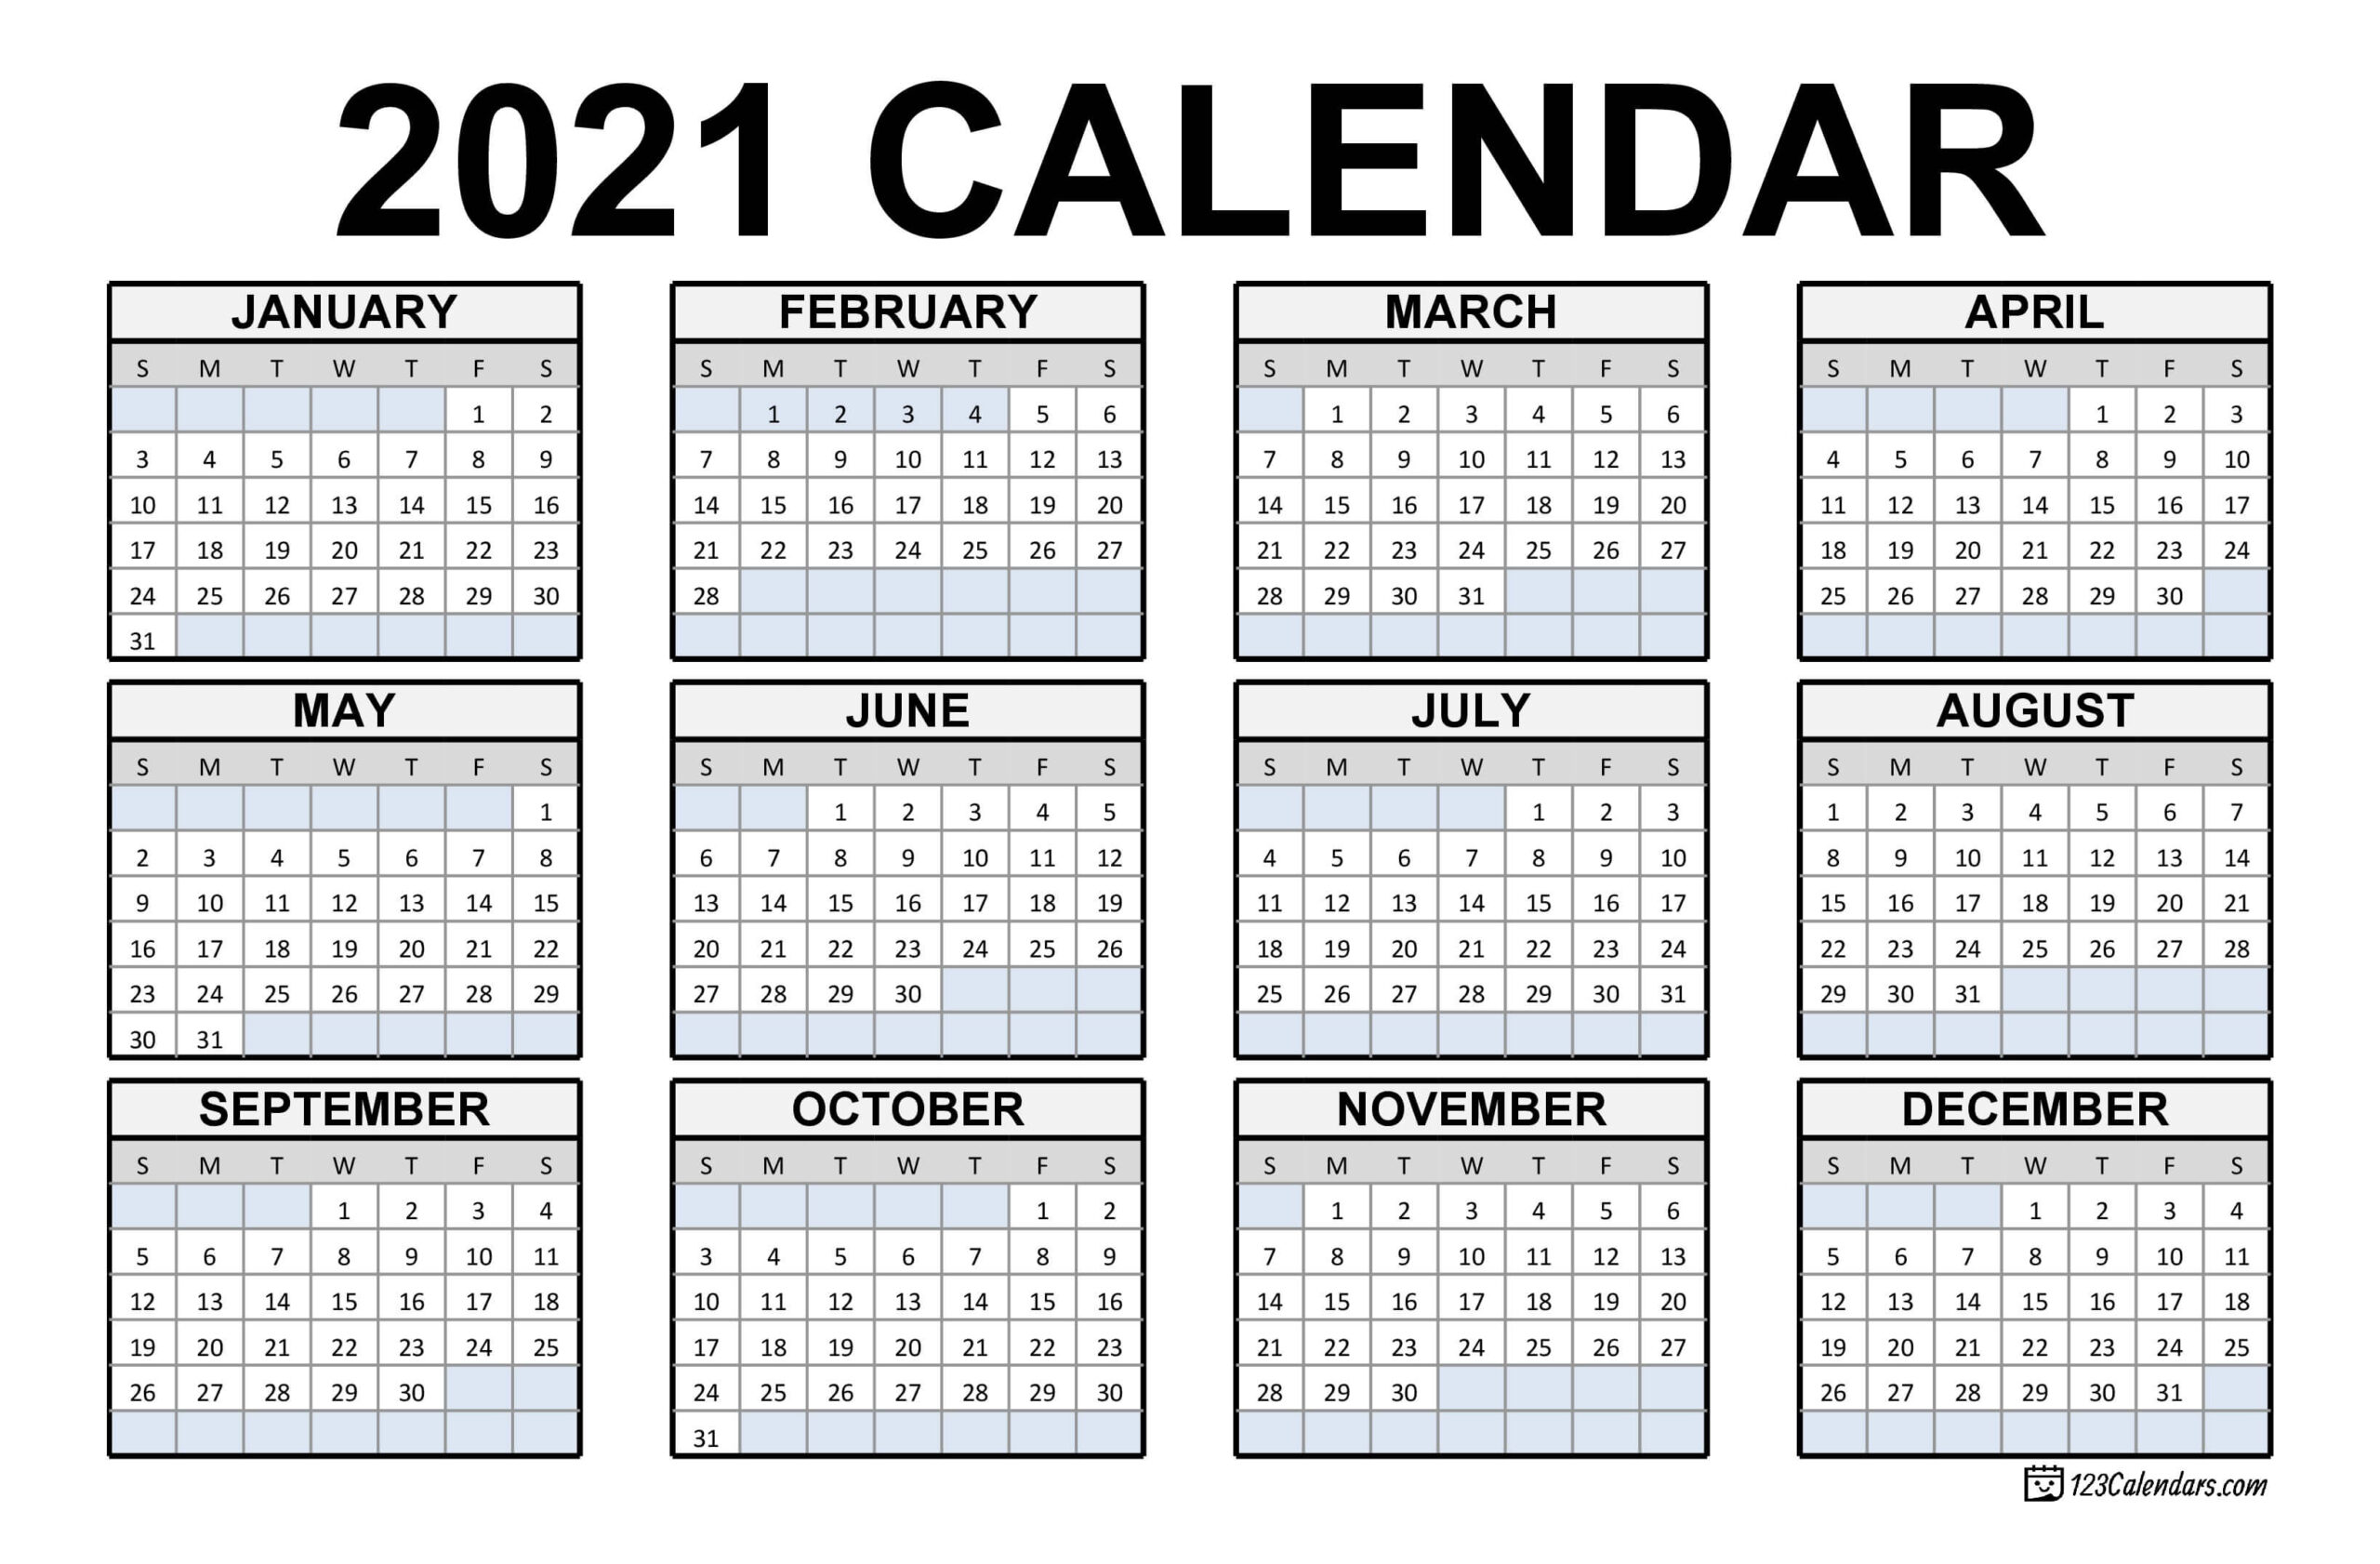 2021 Printable Calendar | 123Calendars in Printable Calendar 2021 And Fill On